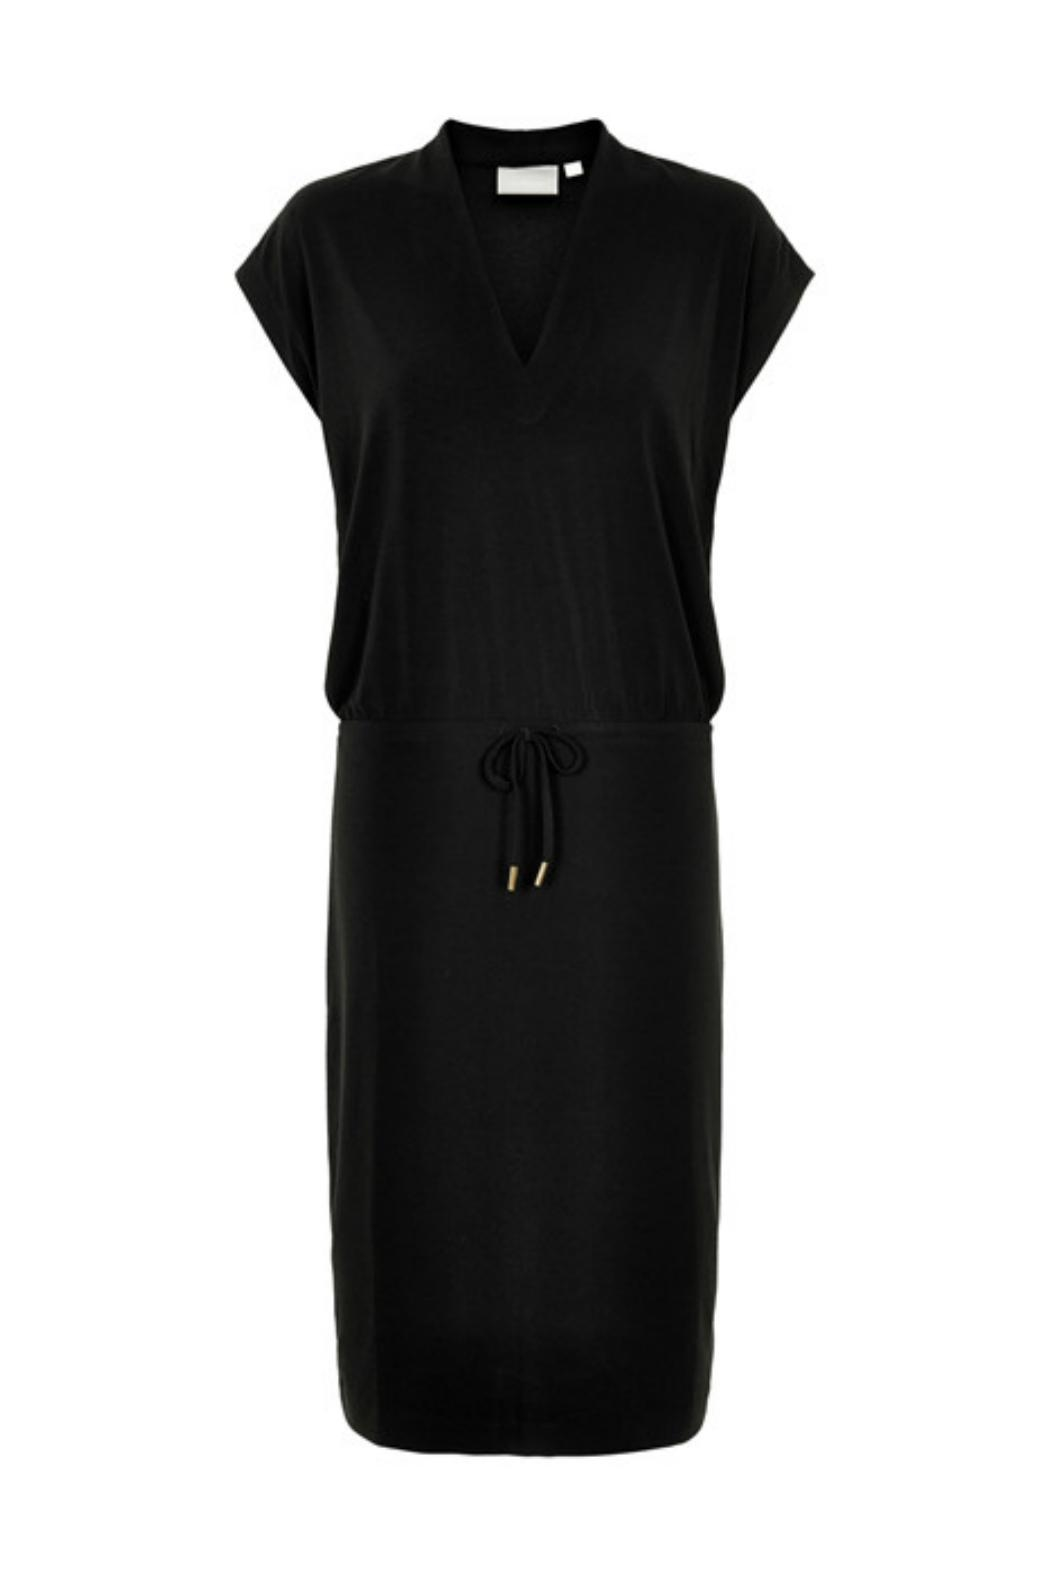 Inwear Feminine Black Dress - Main Image